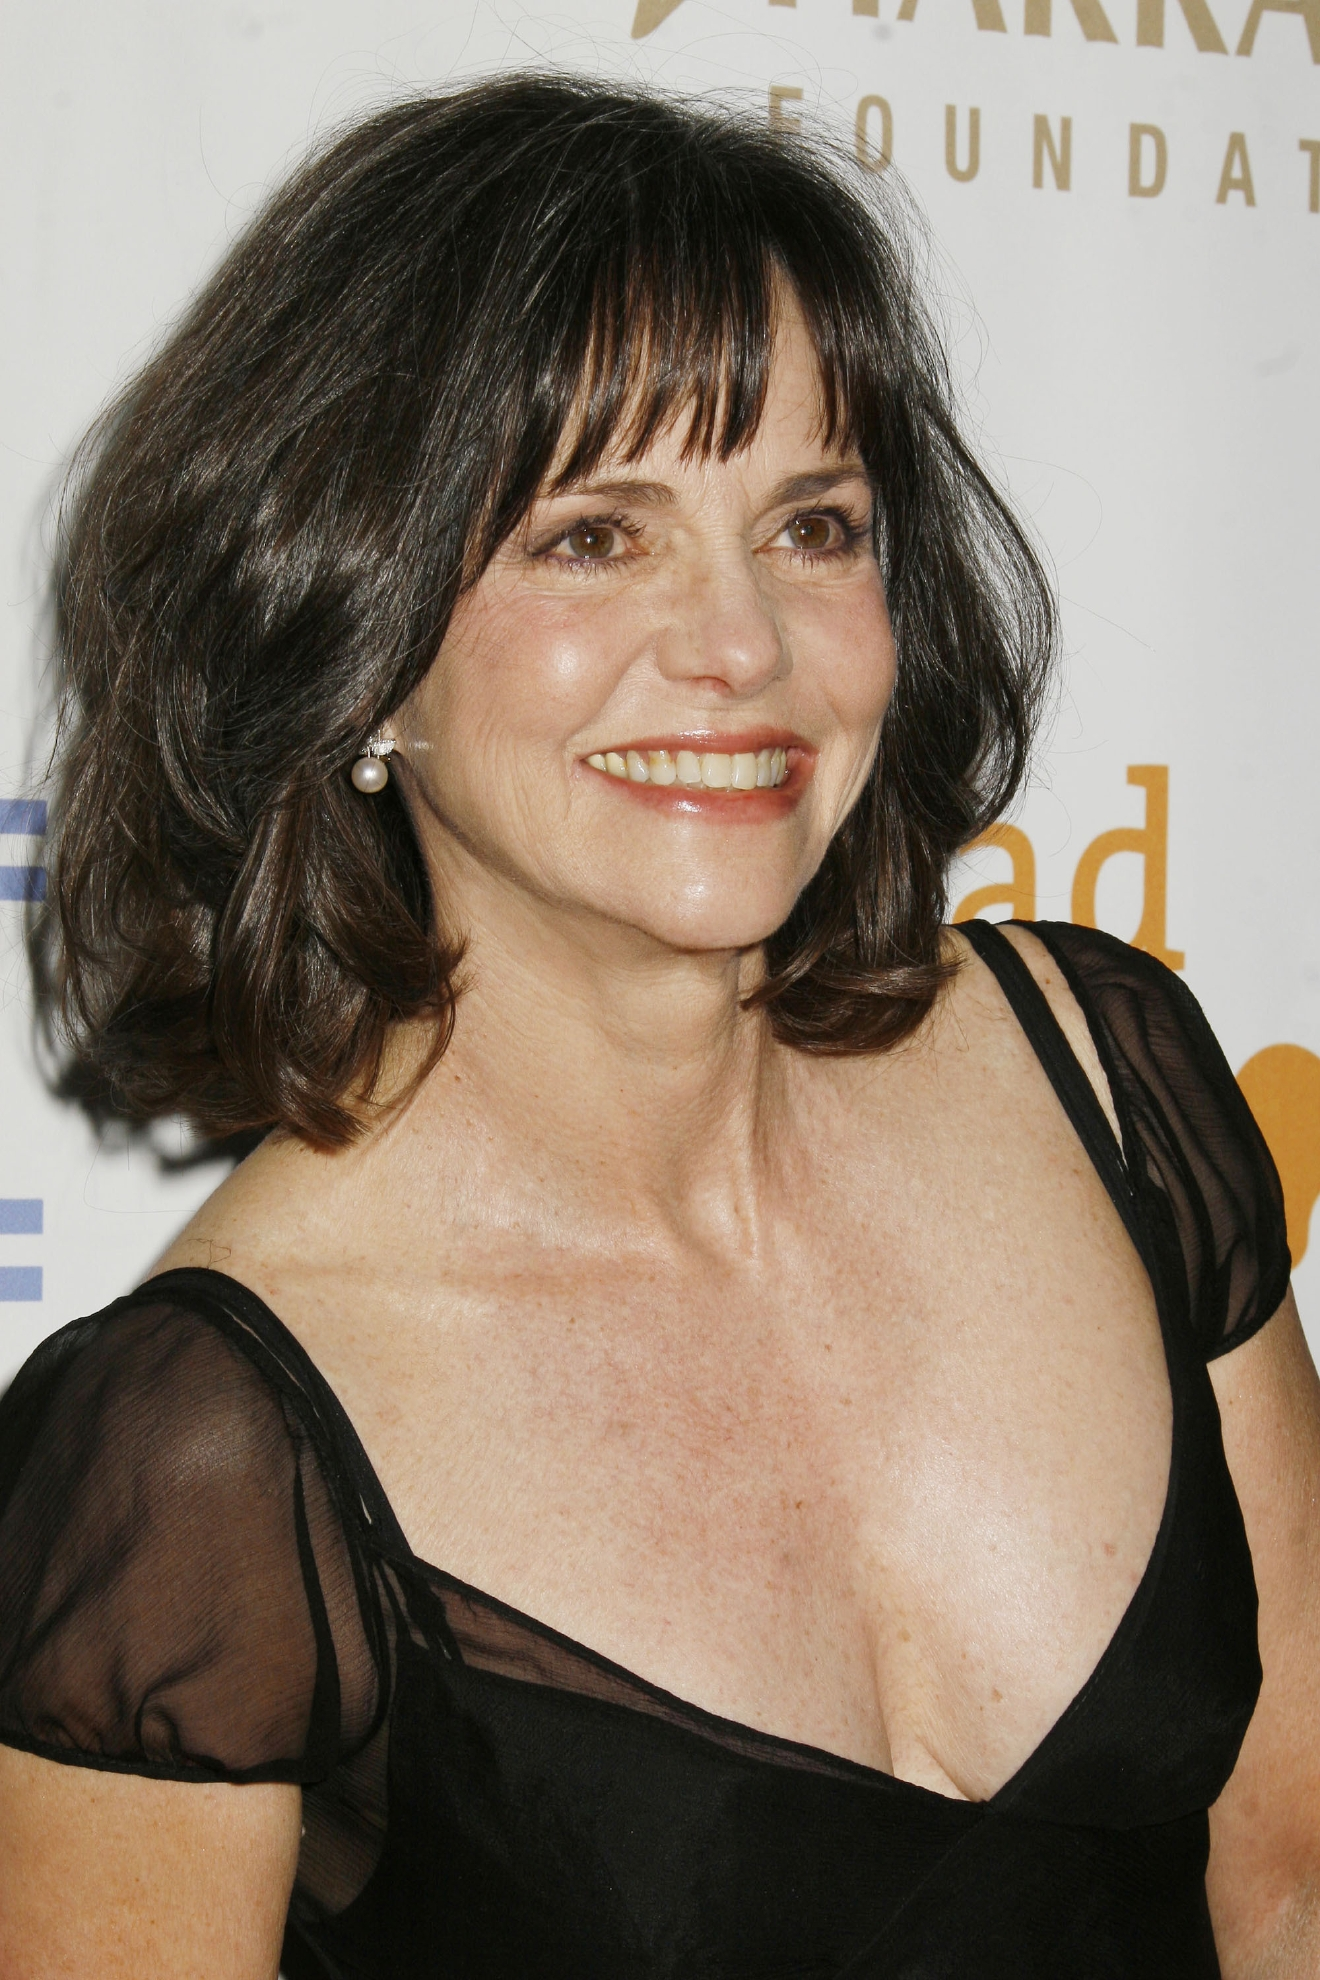 Sally Field 19th Annual GLAAD Media Awards -  Arrivals Held at the Kodak Theatre Hollywood, California USA - 26.04.08  Where: United States When: 26 Apr 2008 Credit: Adriana M. Barraza / WENN